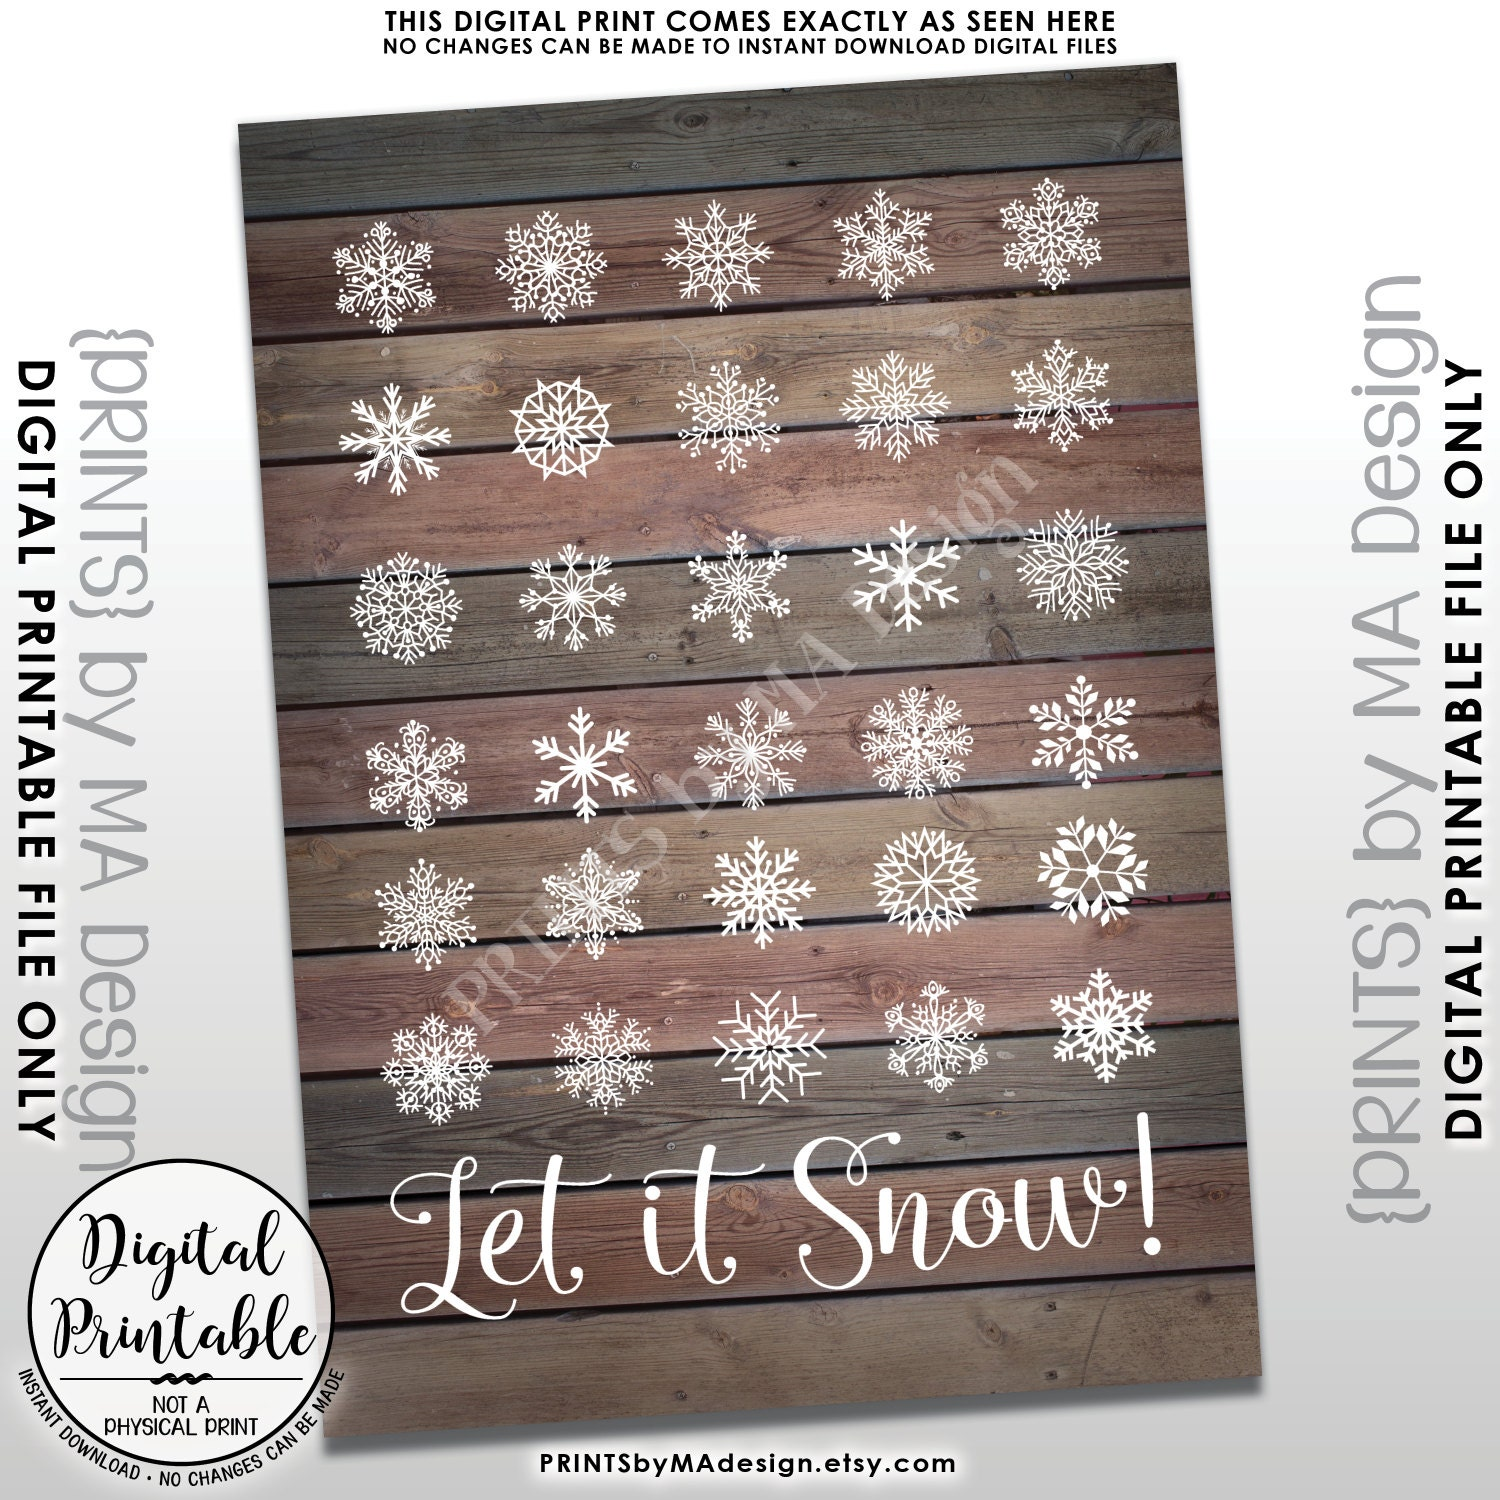 Snowing christmas decoration let it snow - Let It Snow Sign Winter Decor Christmas Decoration Snowing Snow Flurry Snowflakes Instant Download 5x7 Rustic Wood Style Printable